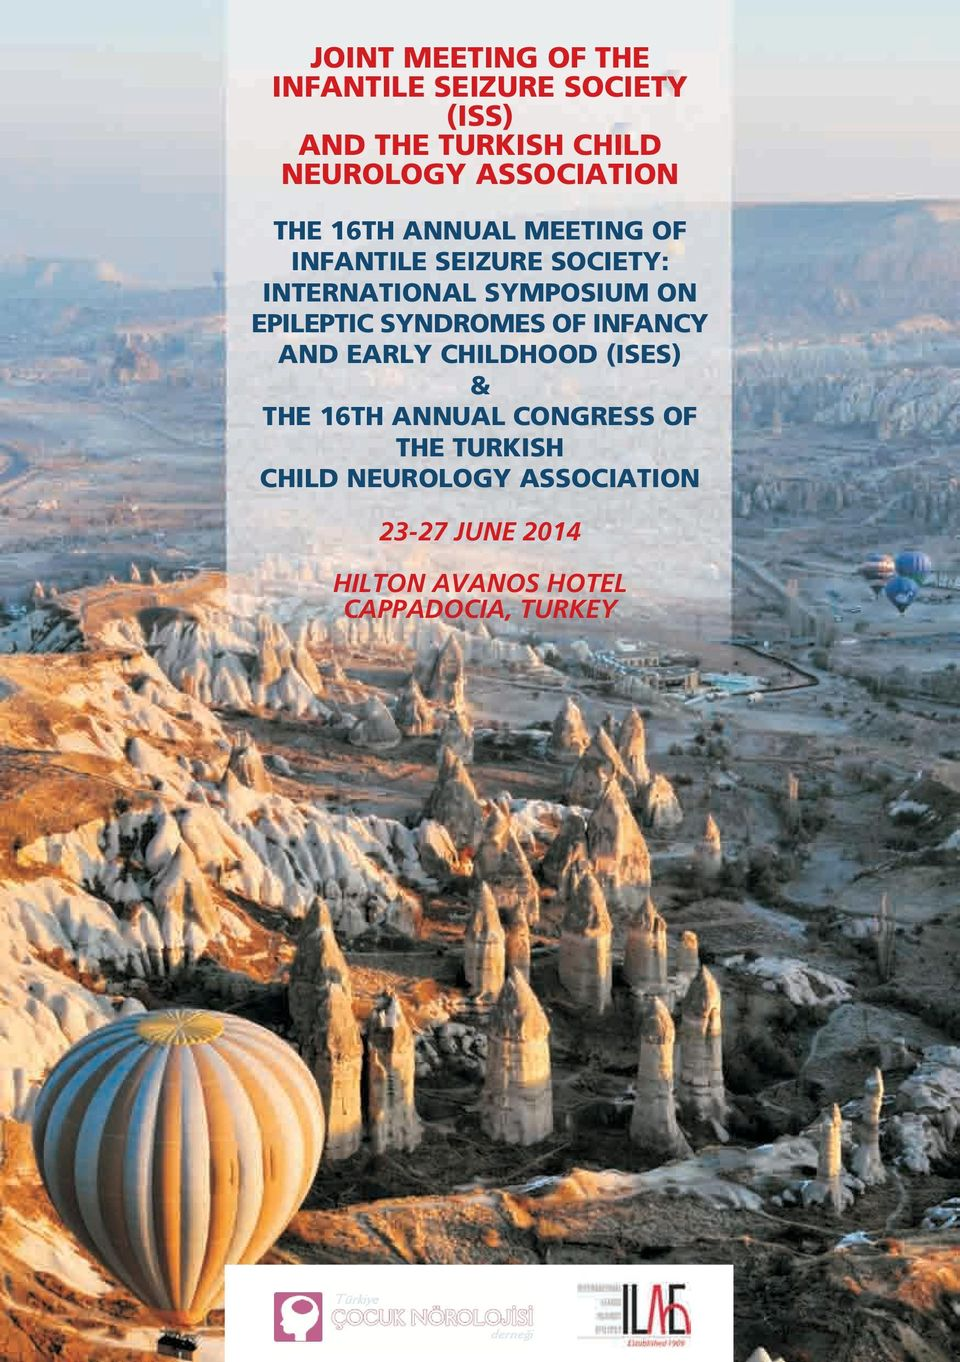 ON EPILEPTIC SYNDROMES OF INFANCY AND EARLY CHILDHOOD (ISES) & THE 16TH ANNUAL CONGRESS